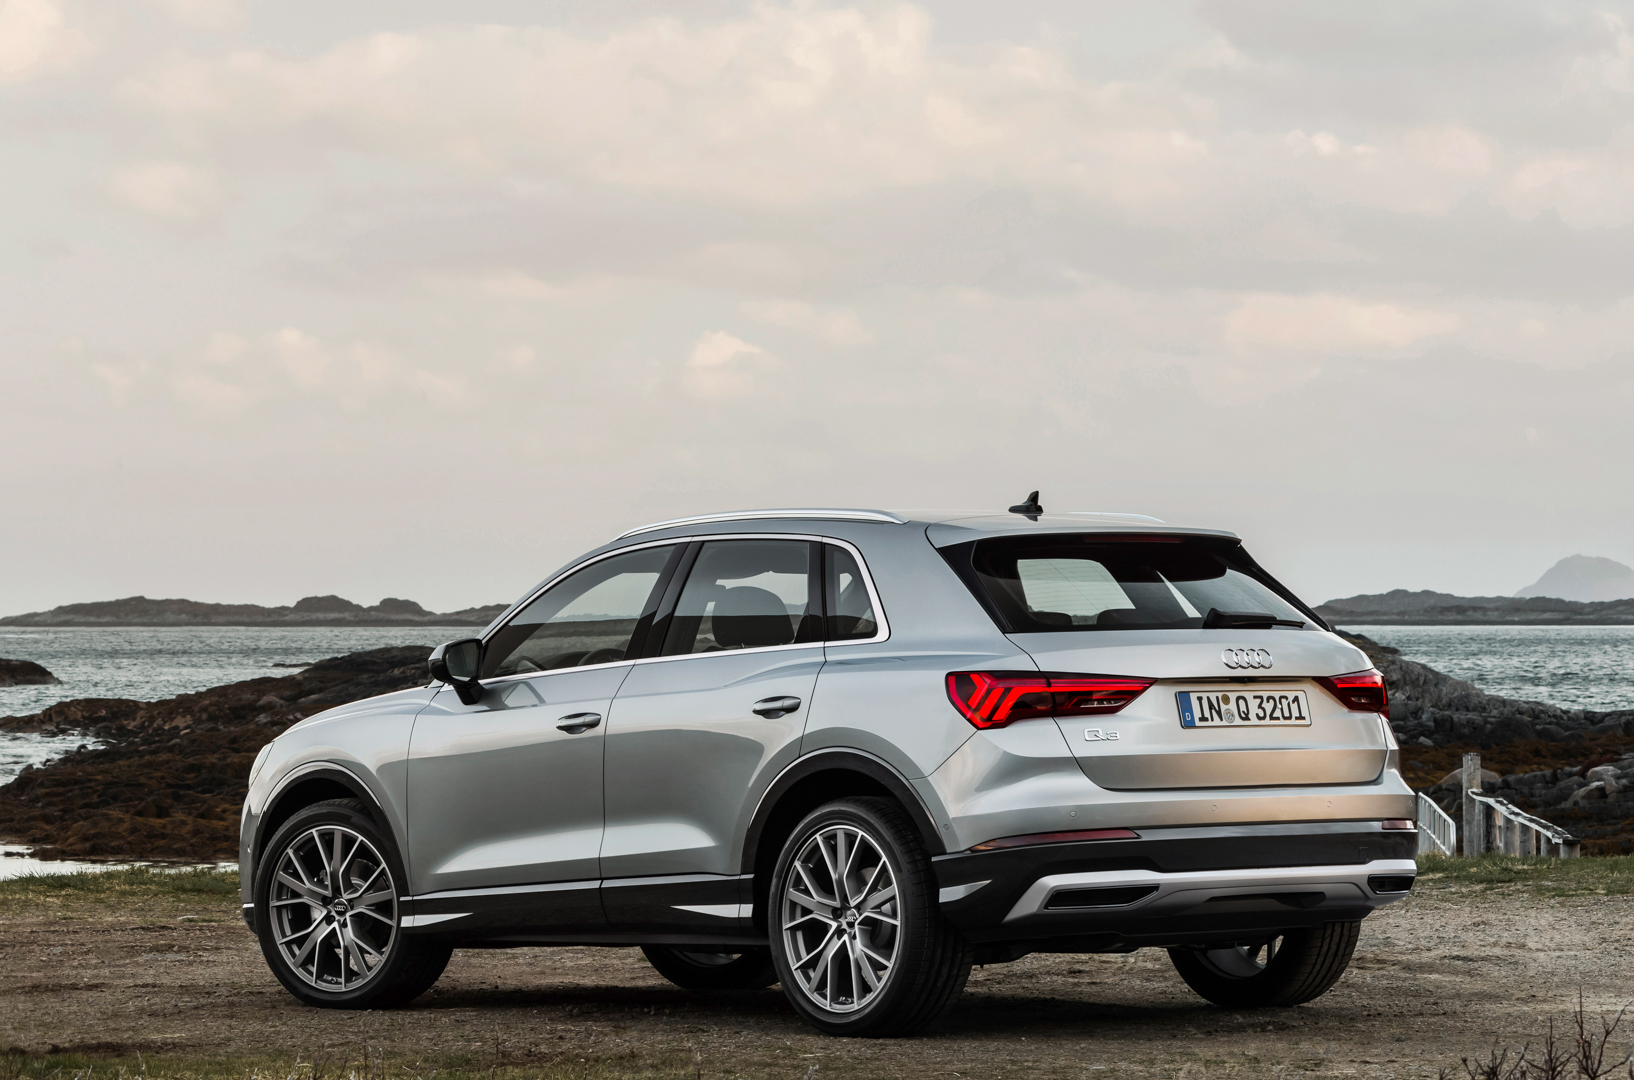 Bmw X2 M35i Will Take On Future Audi Sq3 Sosialpolitik Catriona Maika Top Handle Bag Pink As For Their Interiors The Again Have Sportier Looking Cabin With Its Low Seating Position Traditional Gauges And Center Stack Thats Angled